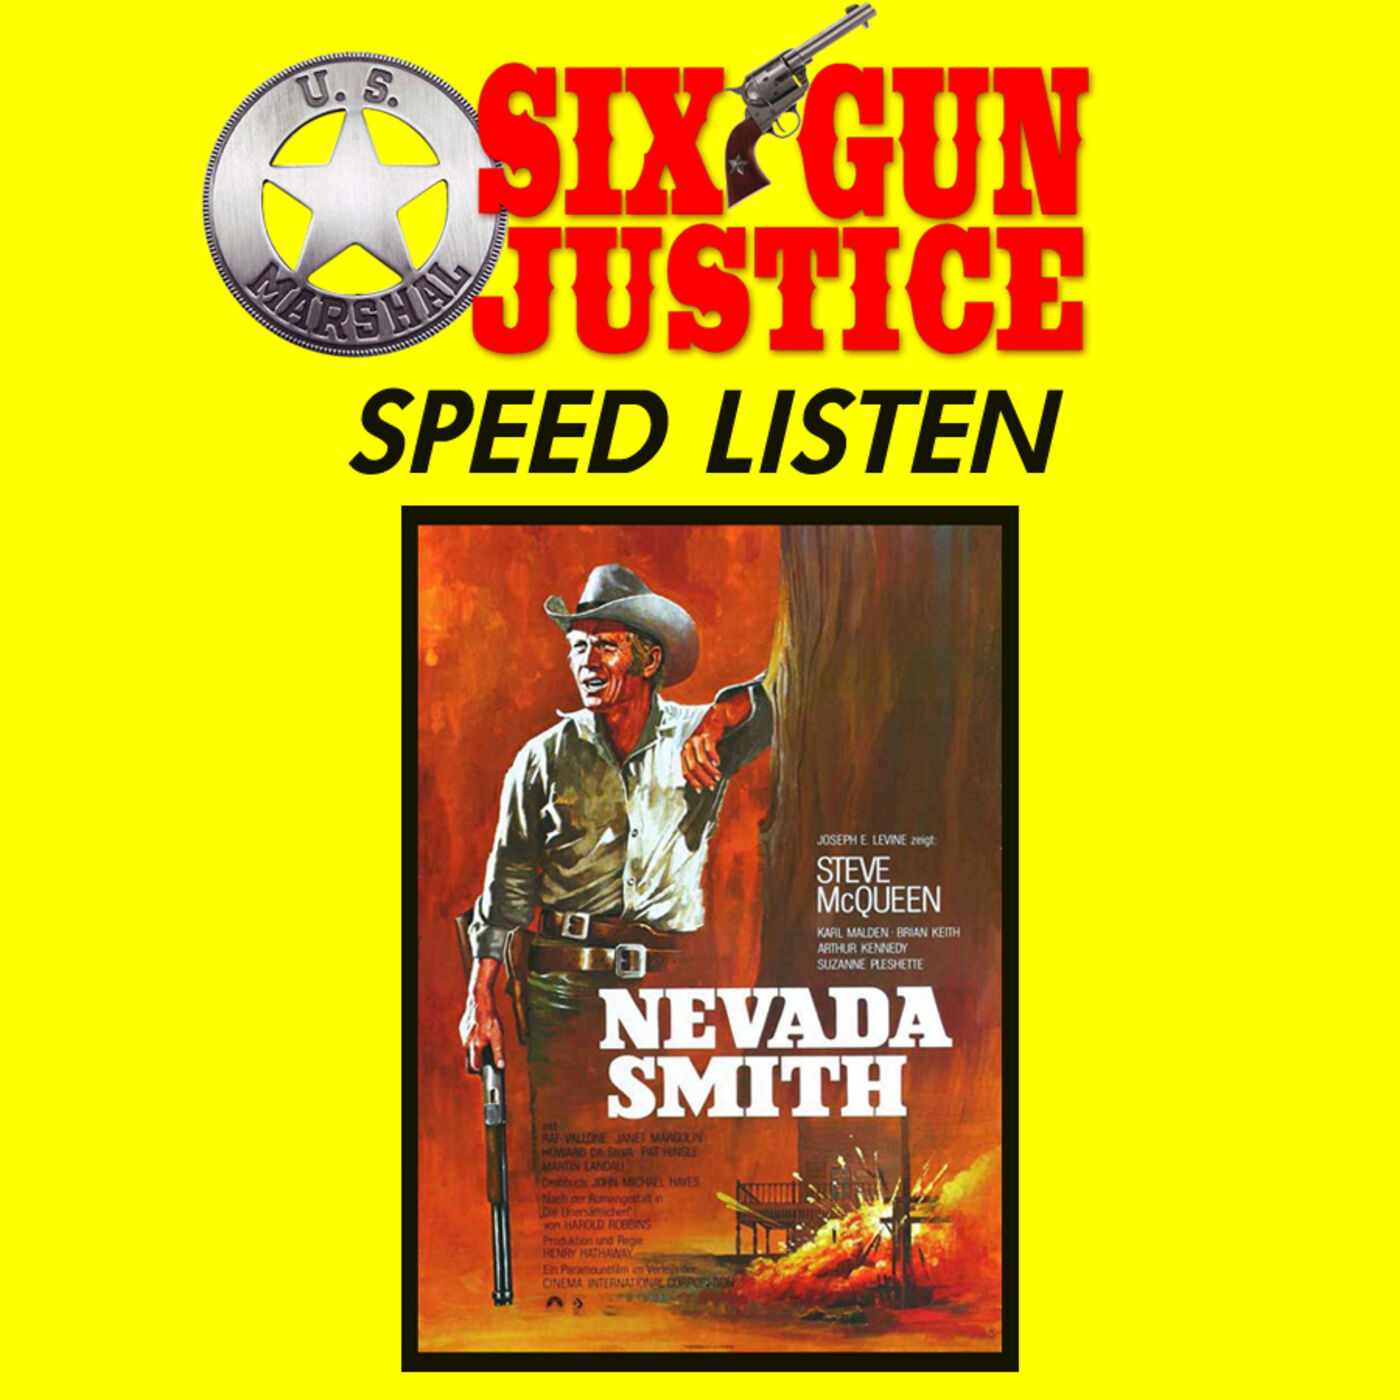 SIX-GUN JUSTICE SPEED LISTEN—NEVADA SMITH